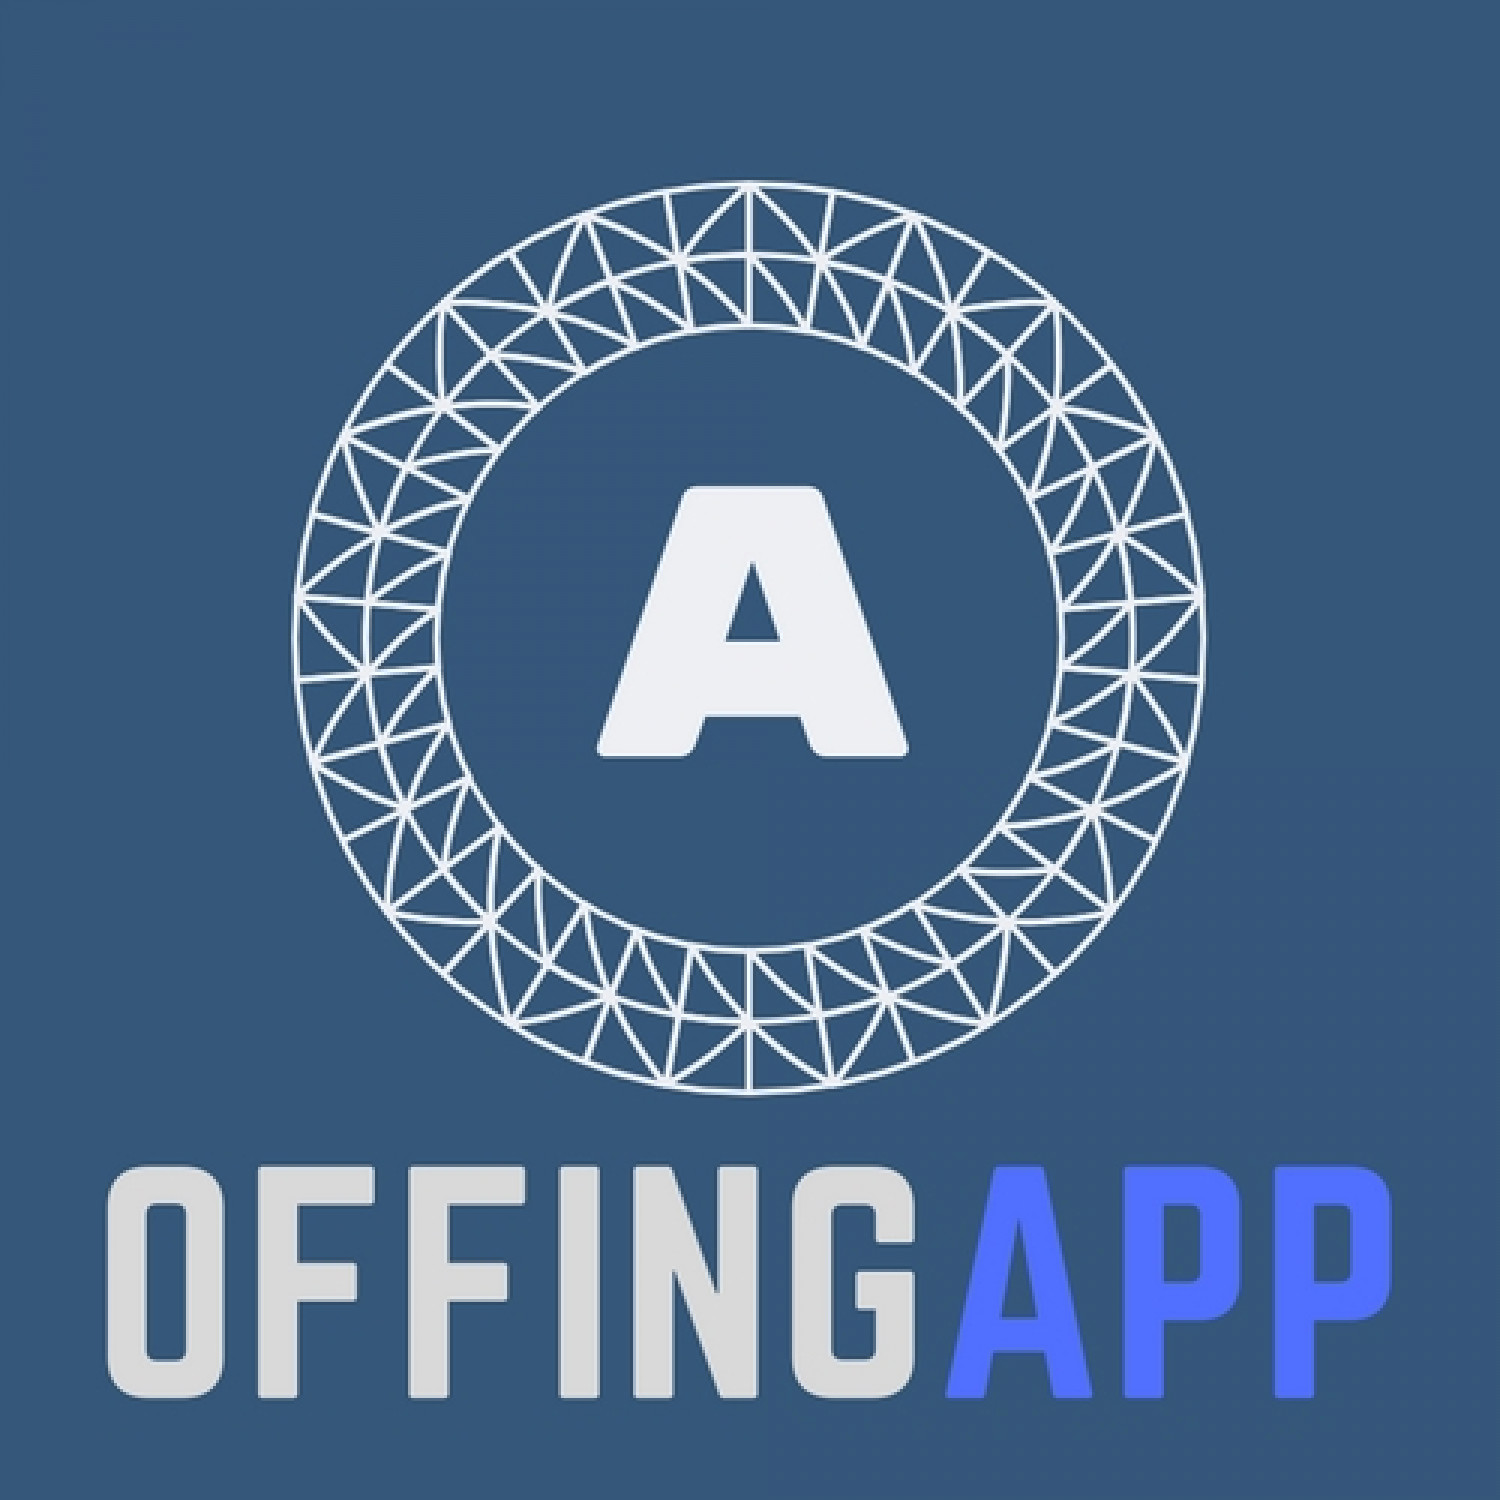 About Offingapp mobile app company Infographic